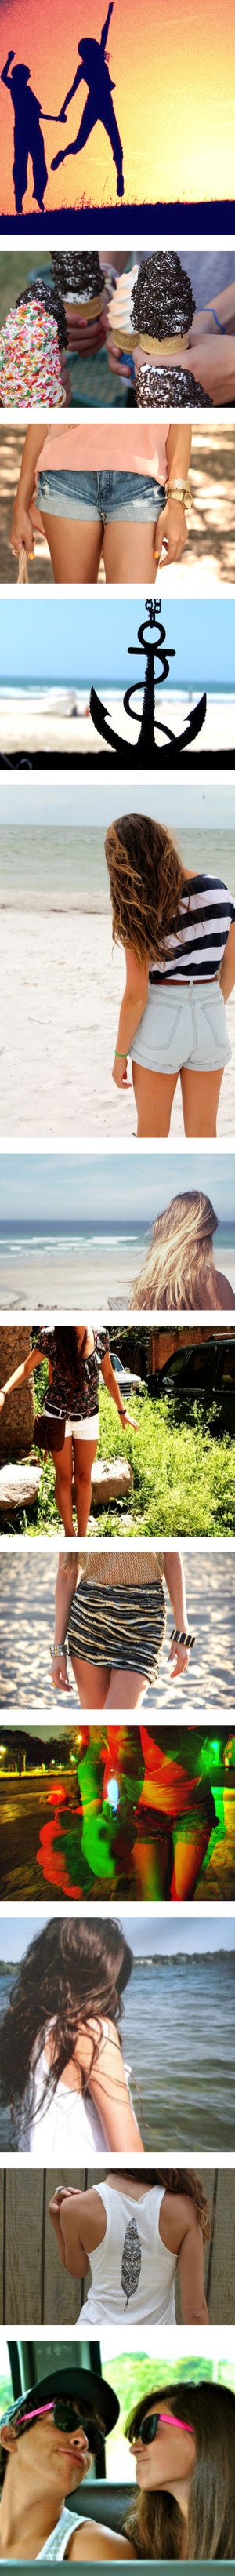 """580. summer pictures ;; part 3"" by dazzleme ❤ liked on Polyvore"